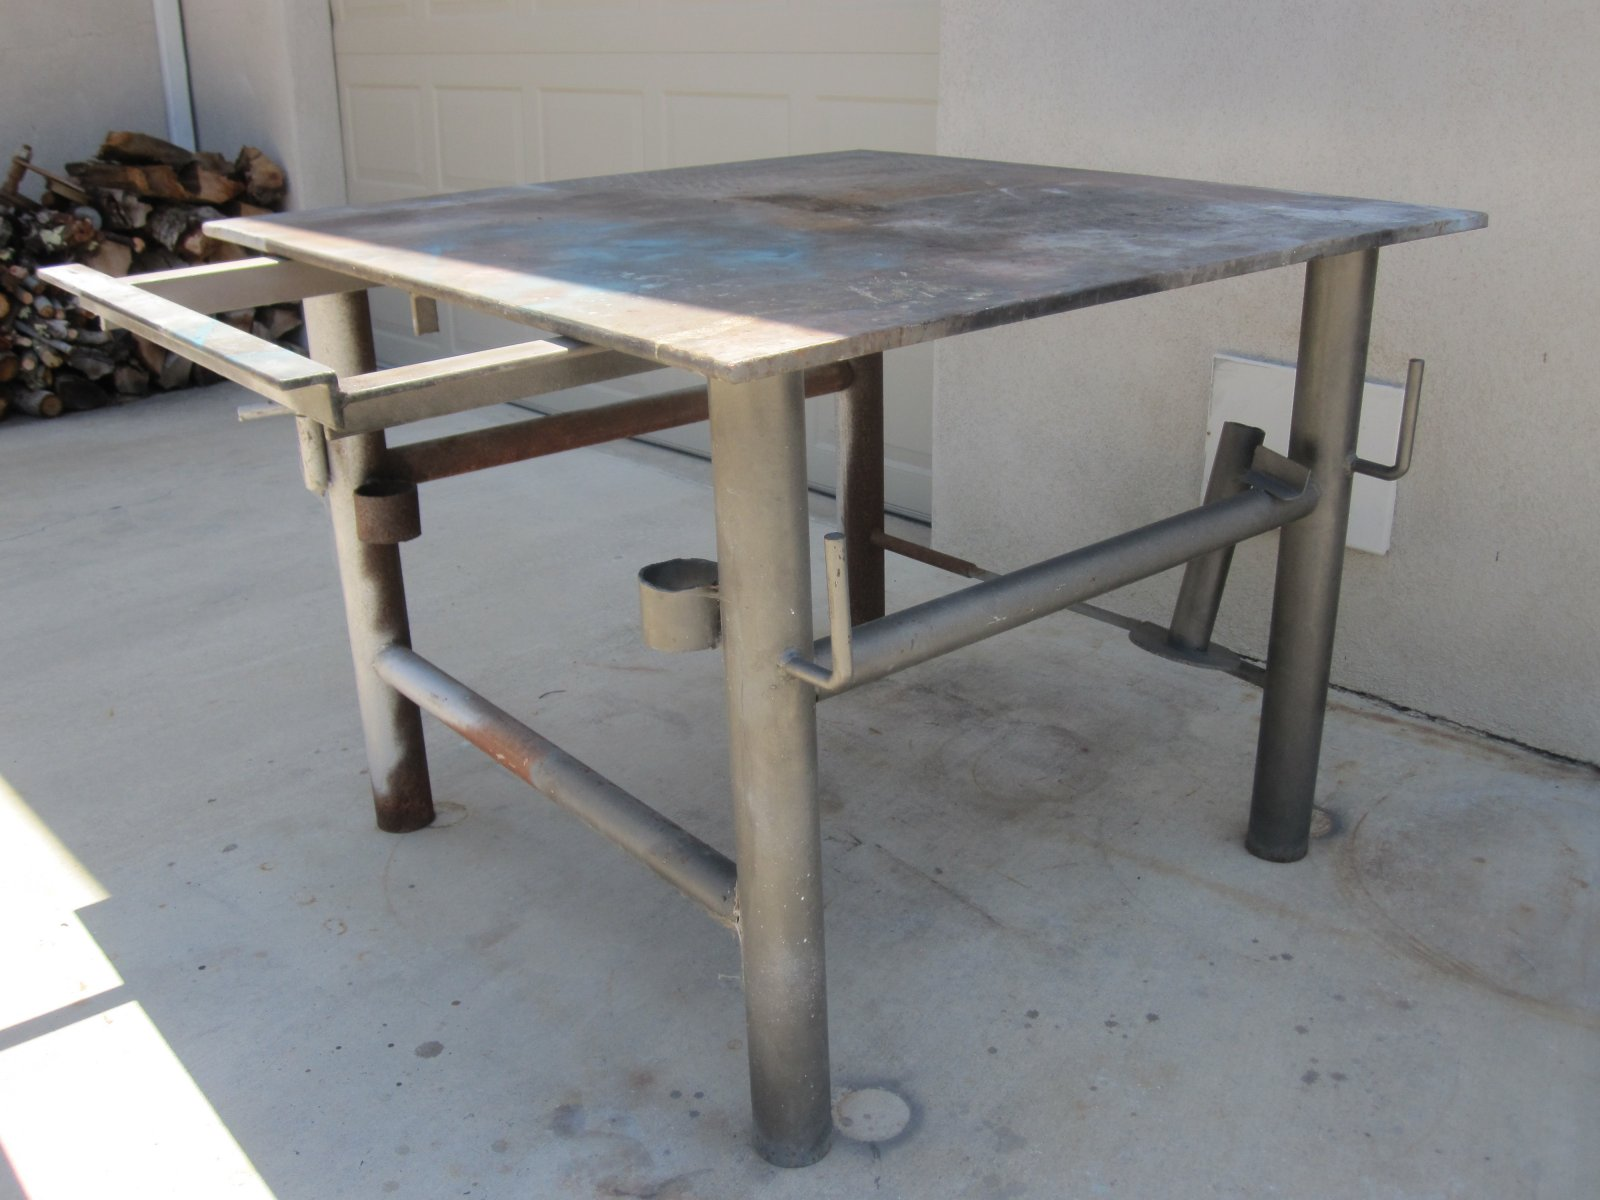 Welding Table For Sale 400 SOLD The HAMB